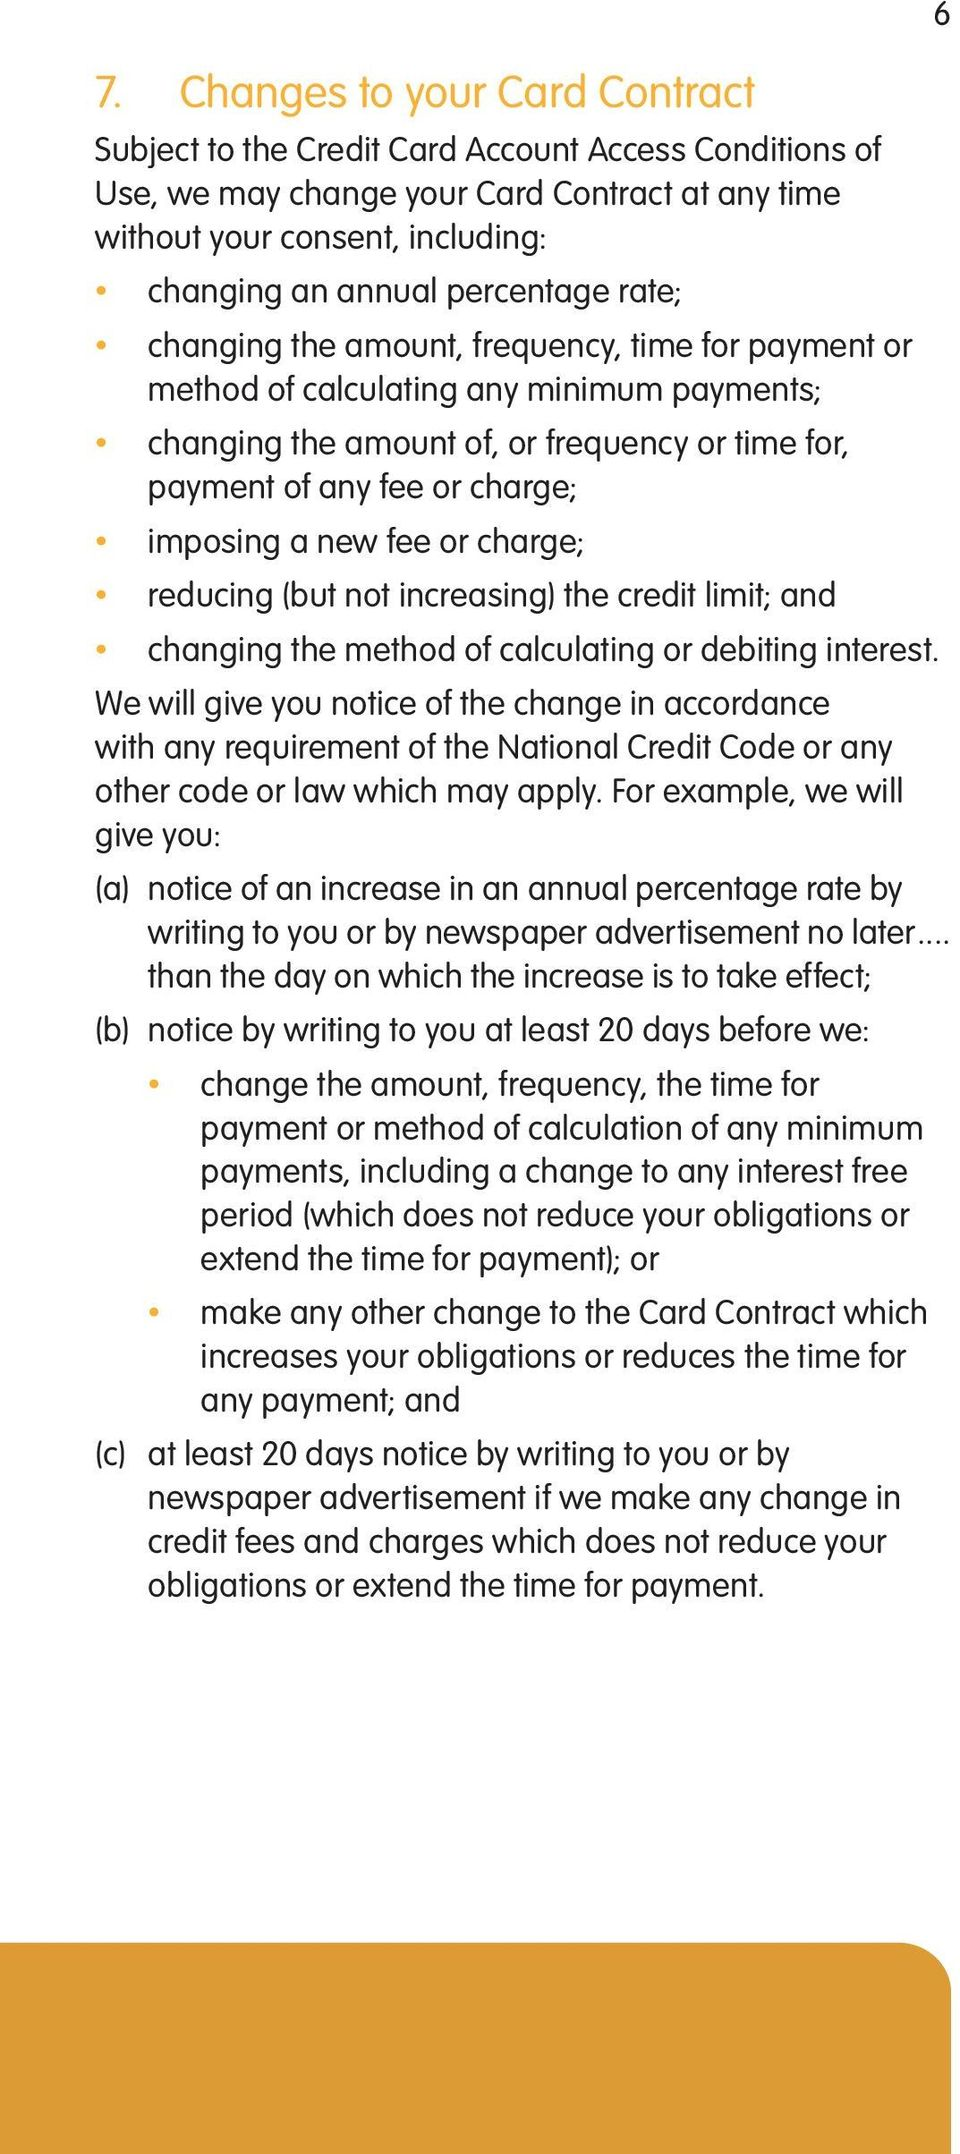 imposing a new fee or charge; reducing (but not increasing) the credit limit; and changing the method of calculating or debiting interest.